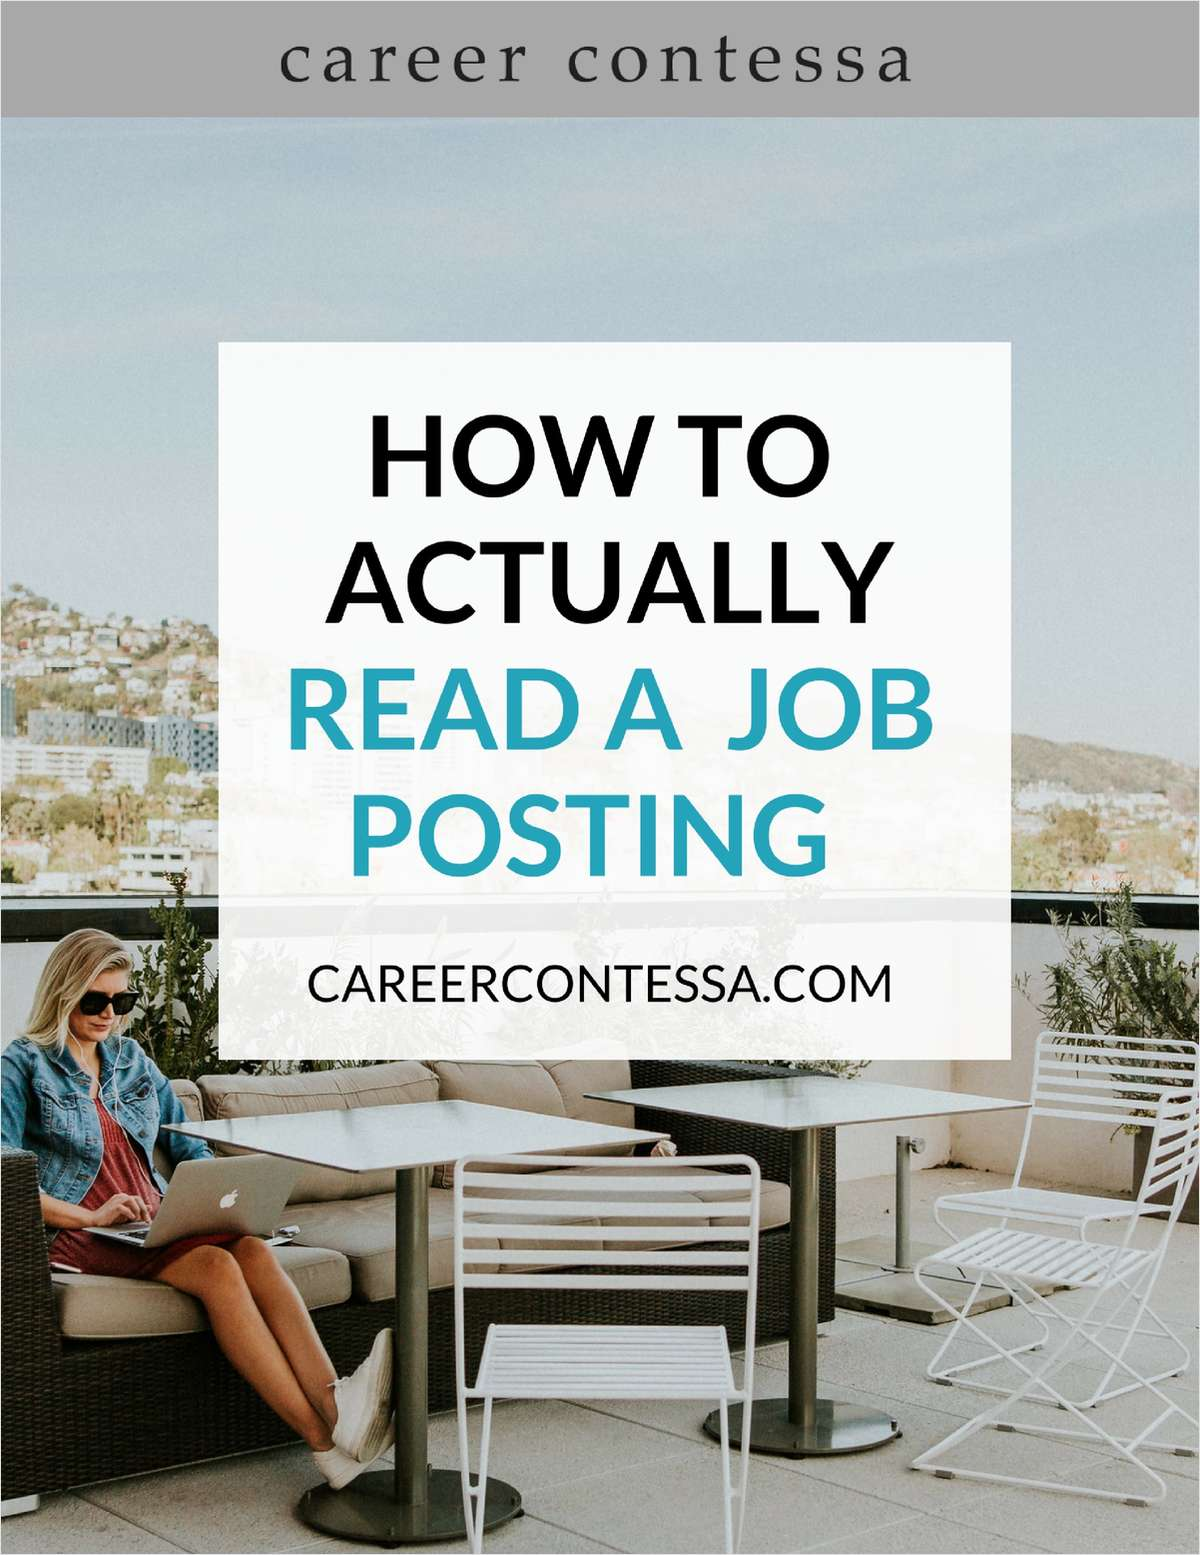 How to Actually Read a Job Posting